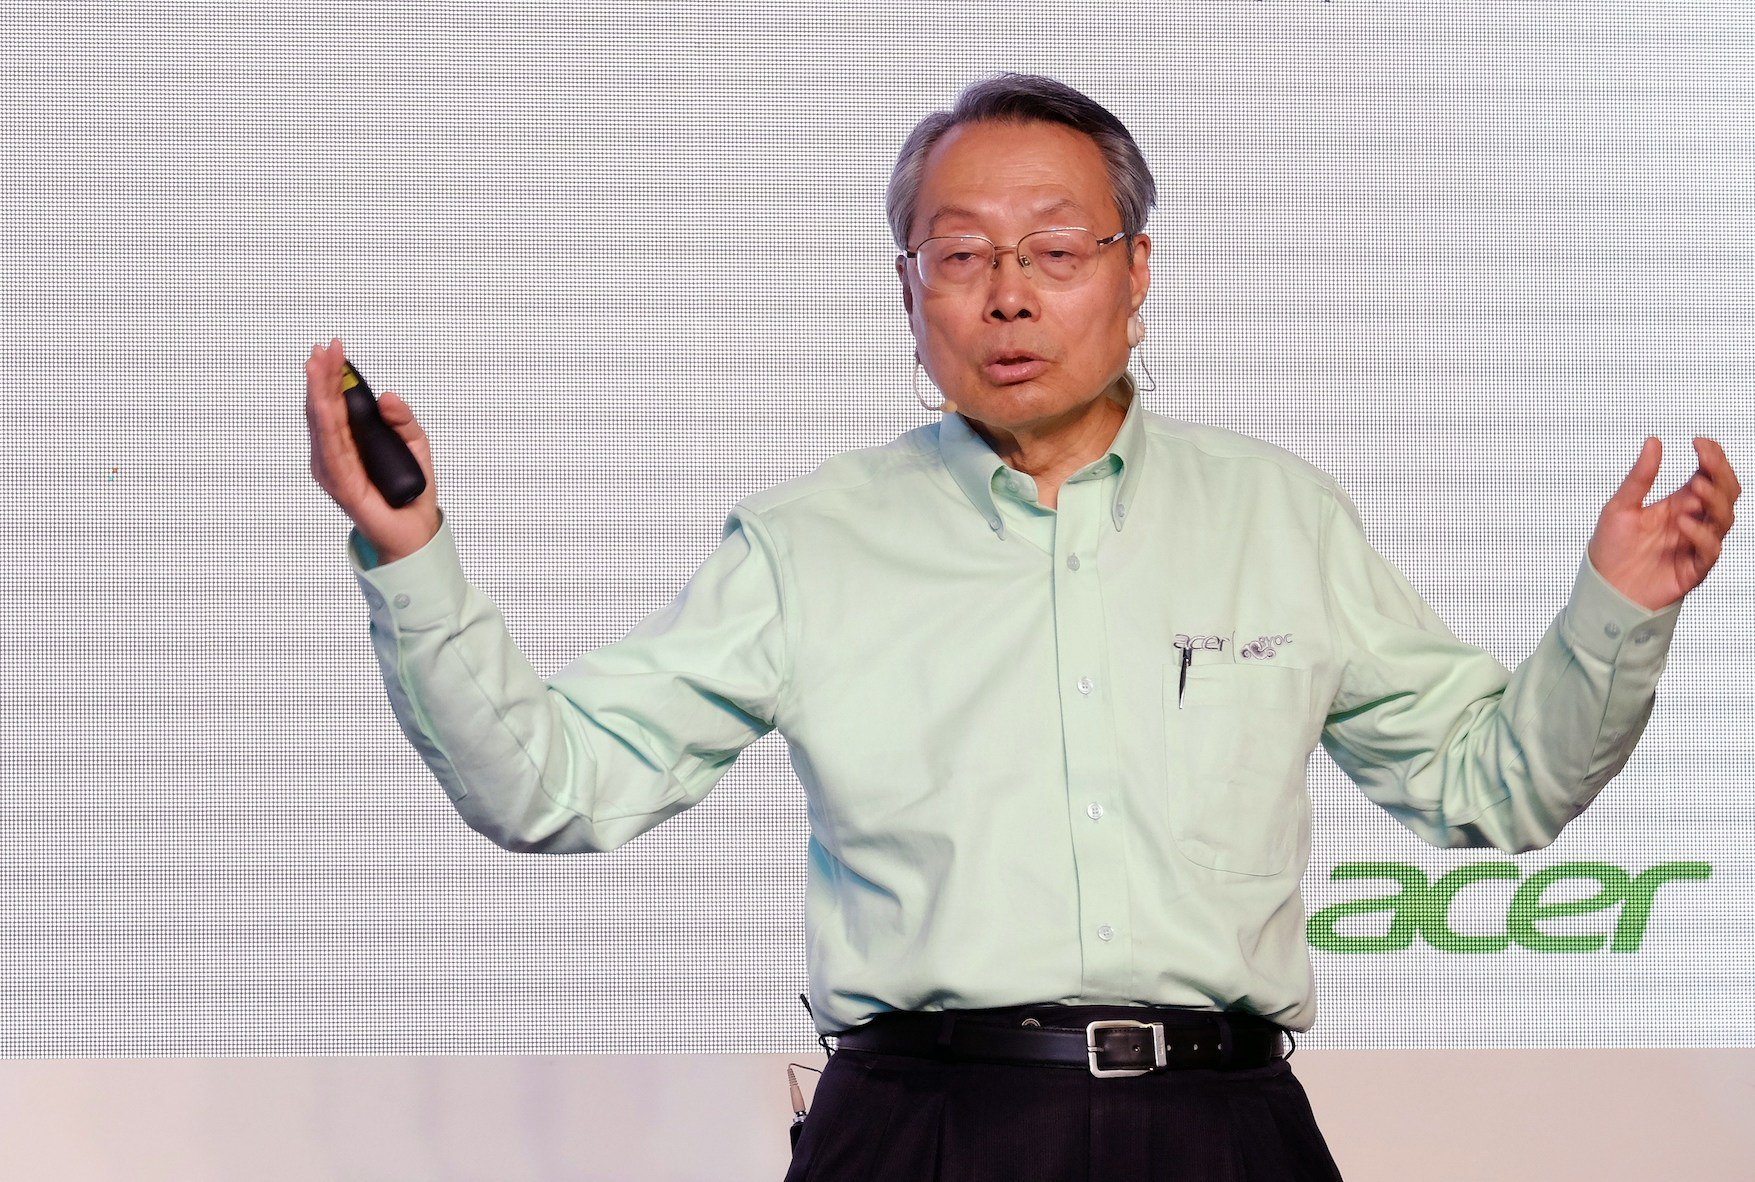 Stan Shih, founder of Taiwan's Acer Inc., speaks during a press conference